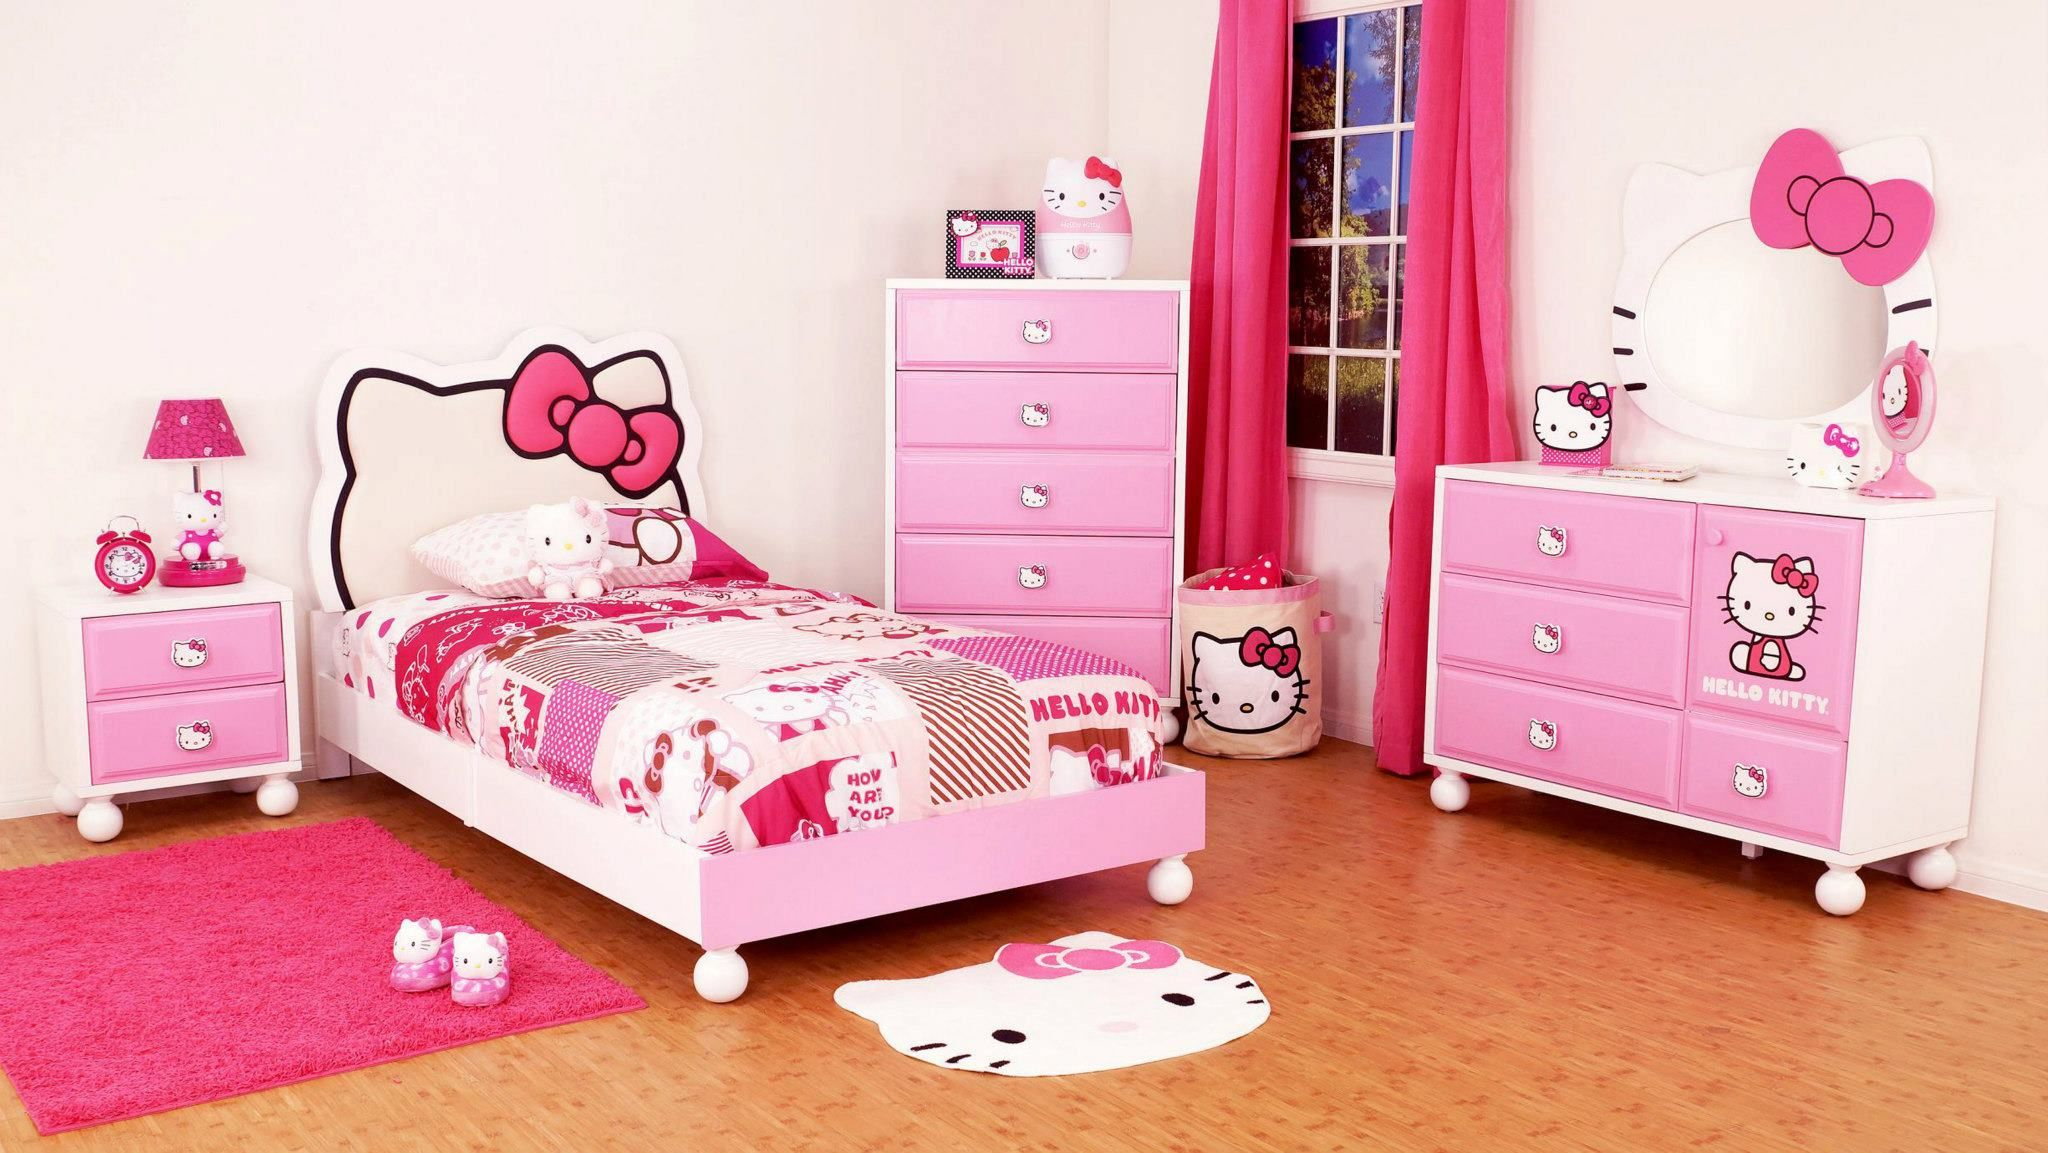 1000 Images About Hello Kitty On Pinterest Hello Kitty Images